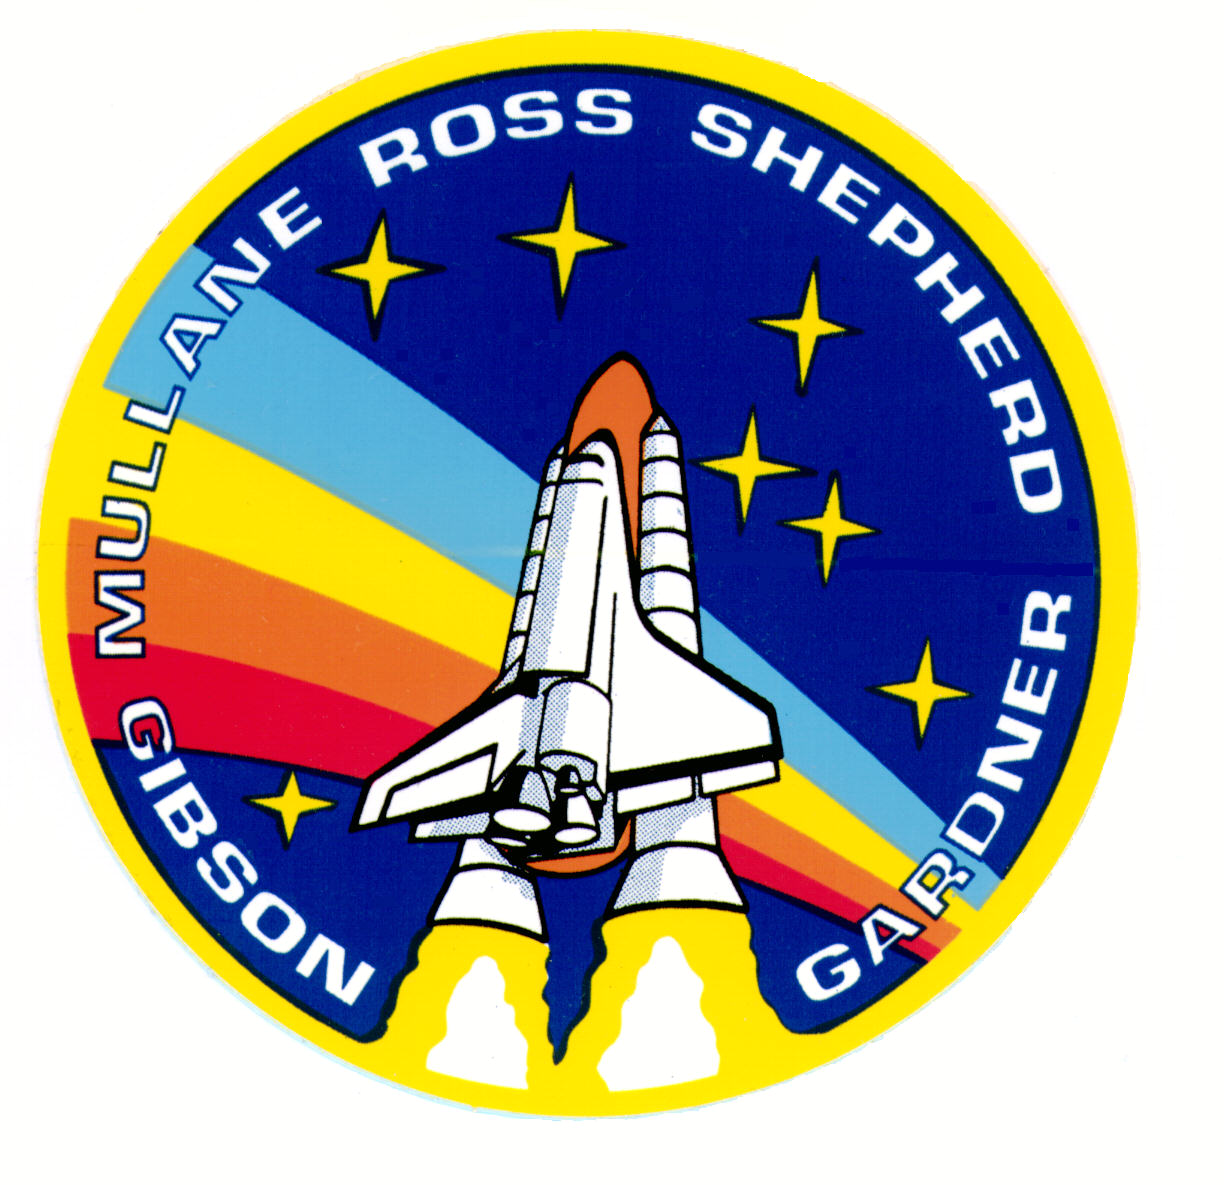 space shuttle mission badges - photo #4